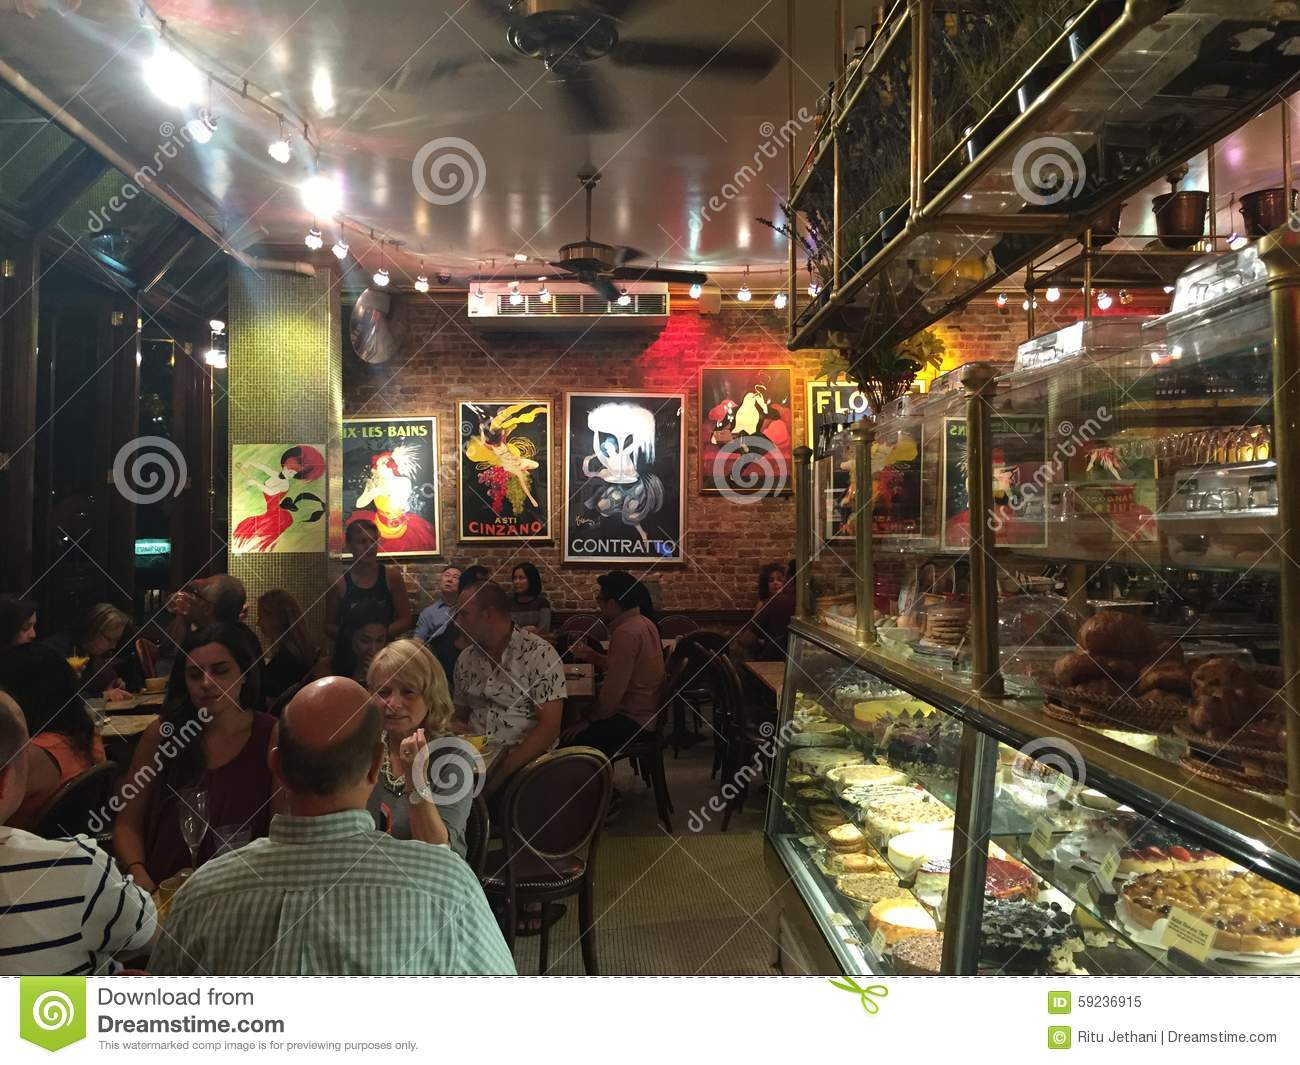 Download Café Lalo en New York City imagen editorial. Imagen de torta - 59236915